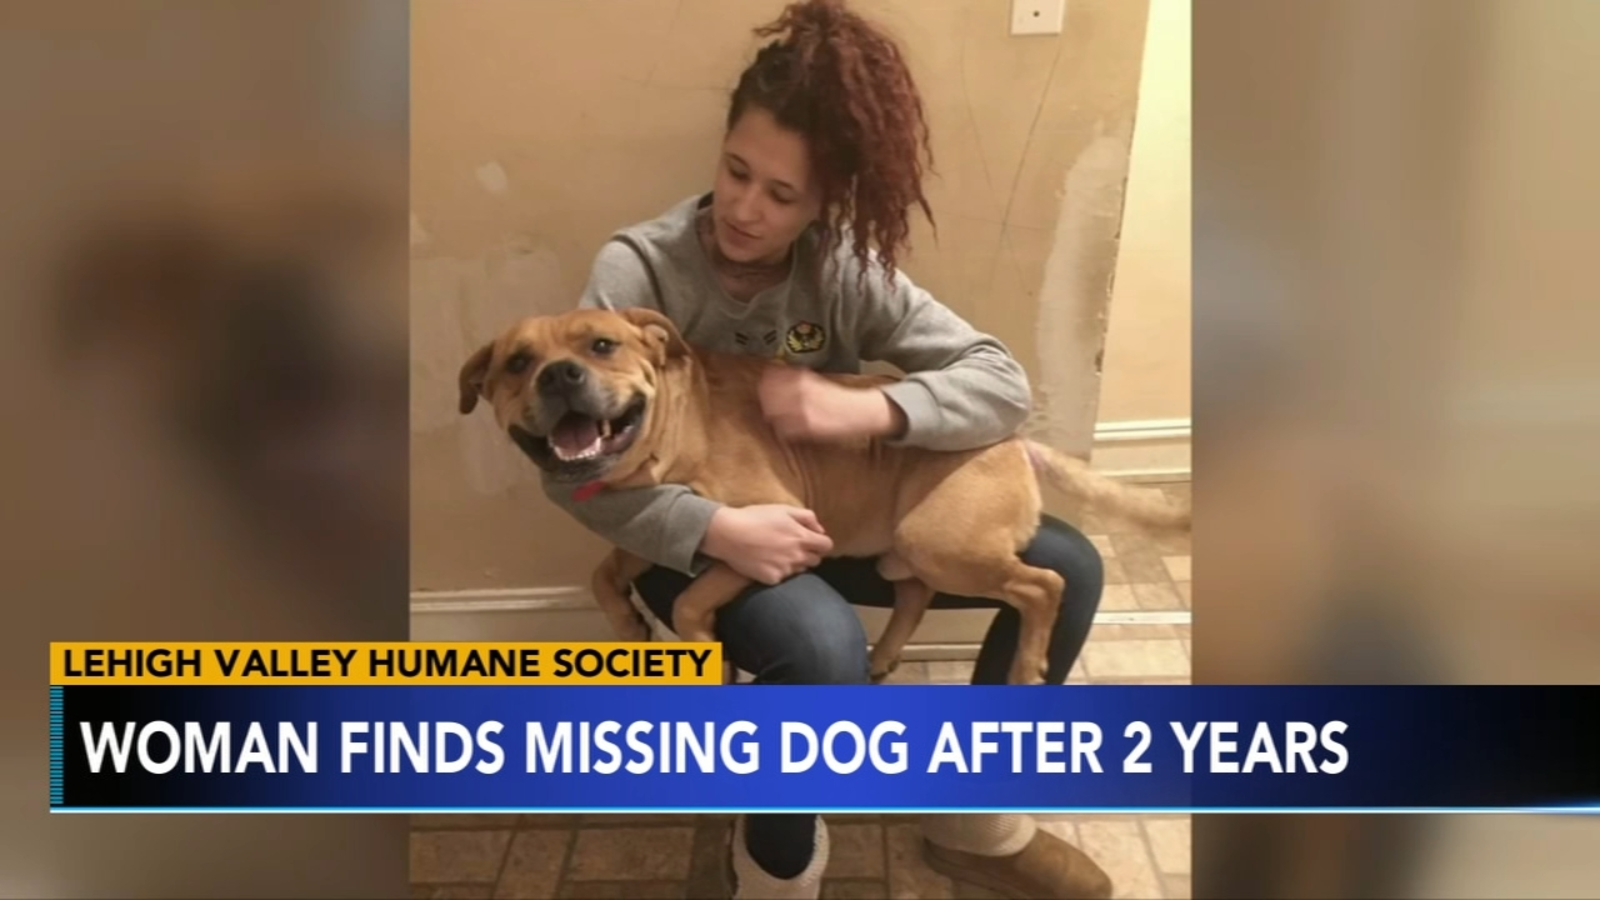 Pennsylvania woman finds missing dog while looking for new pet - 6abc Philadelphia